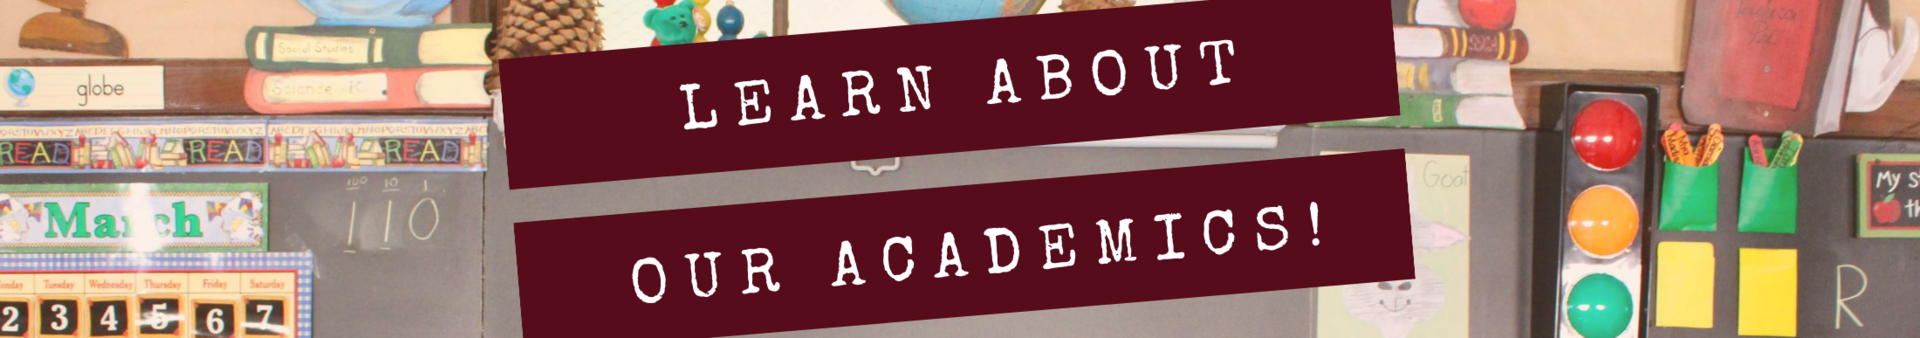 Learn about our academics!